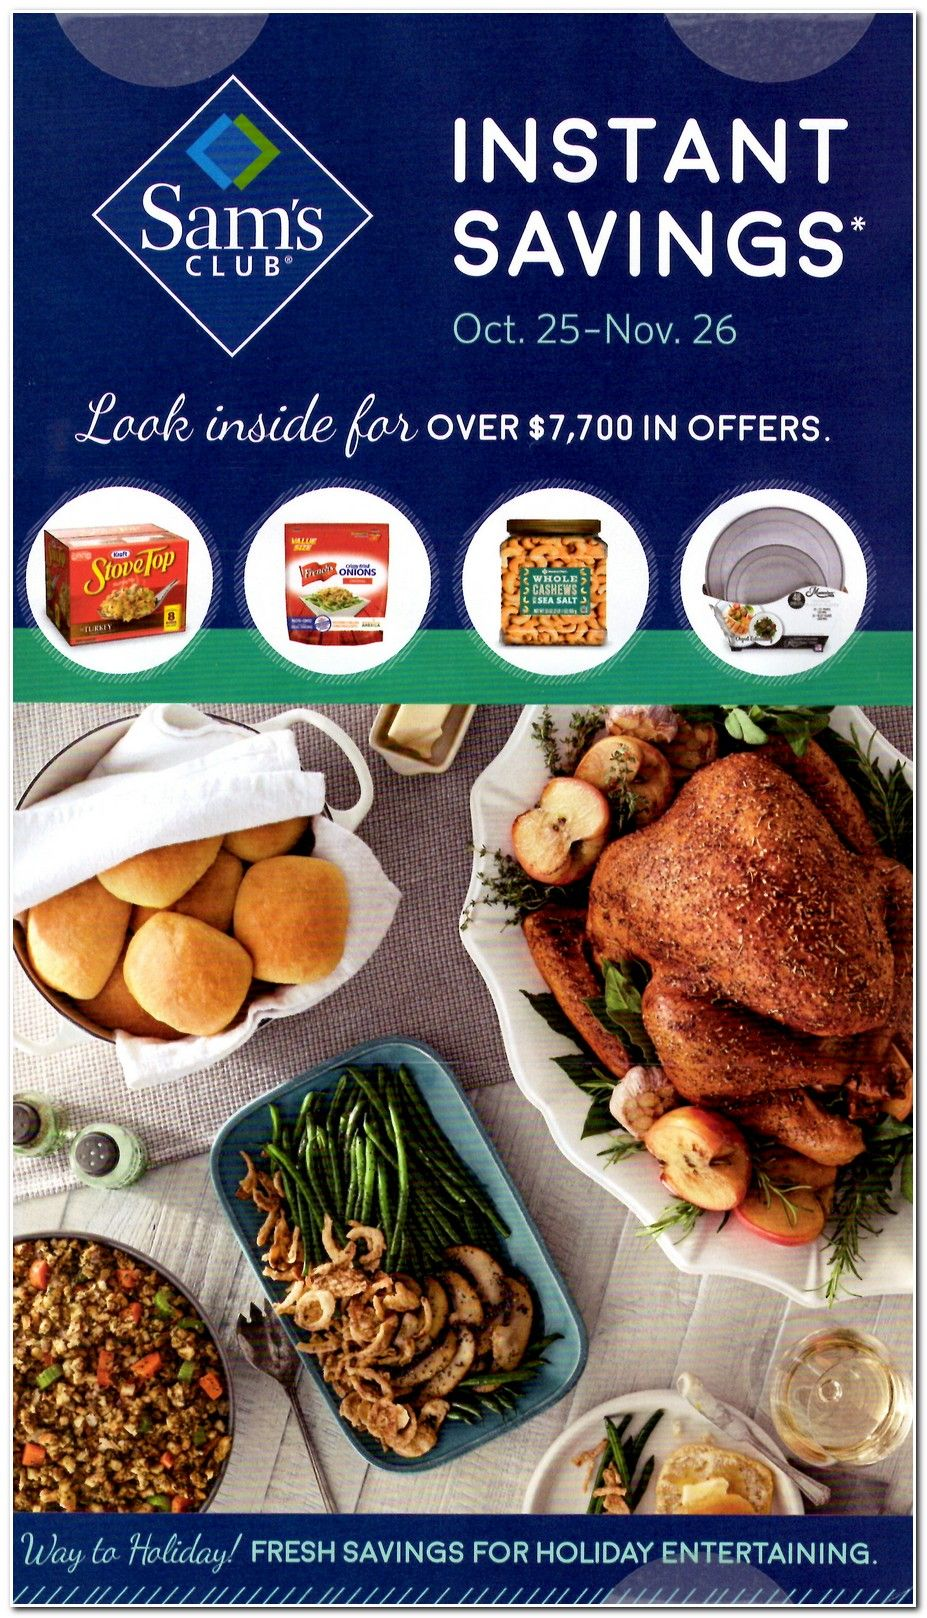 Sam S Club Thanksgiving And Holiday Instant Savings Coupon Book For 2017 Posted See All Thanksgiving 2017 Deals And Discou Sams Club Thanksgiving 2017 Instant